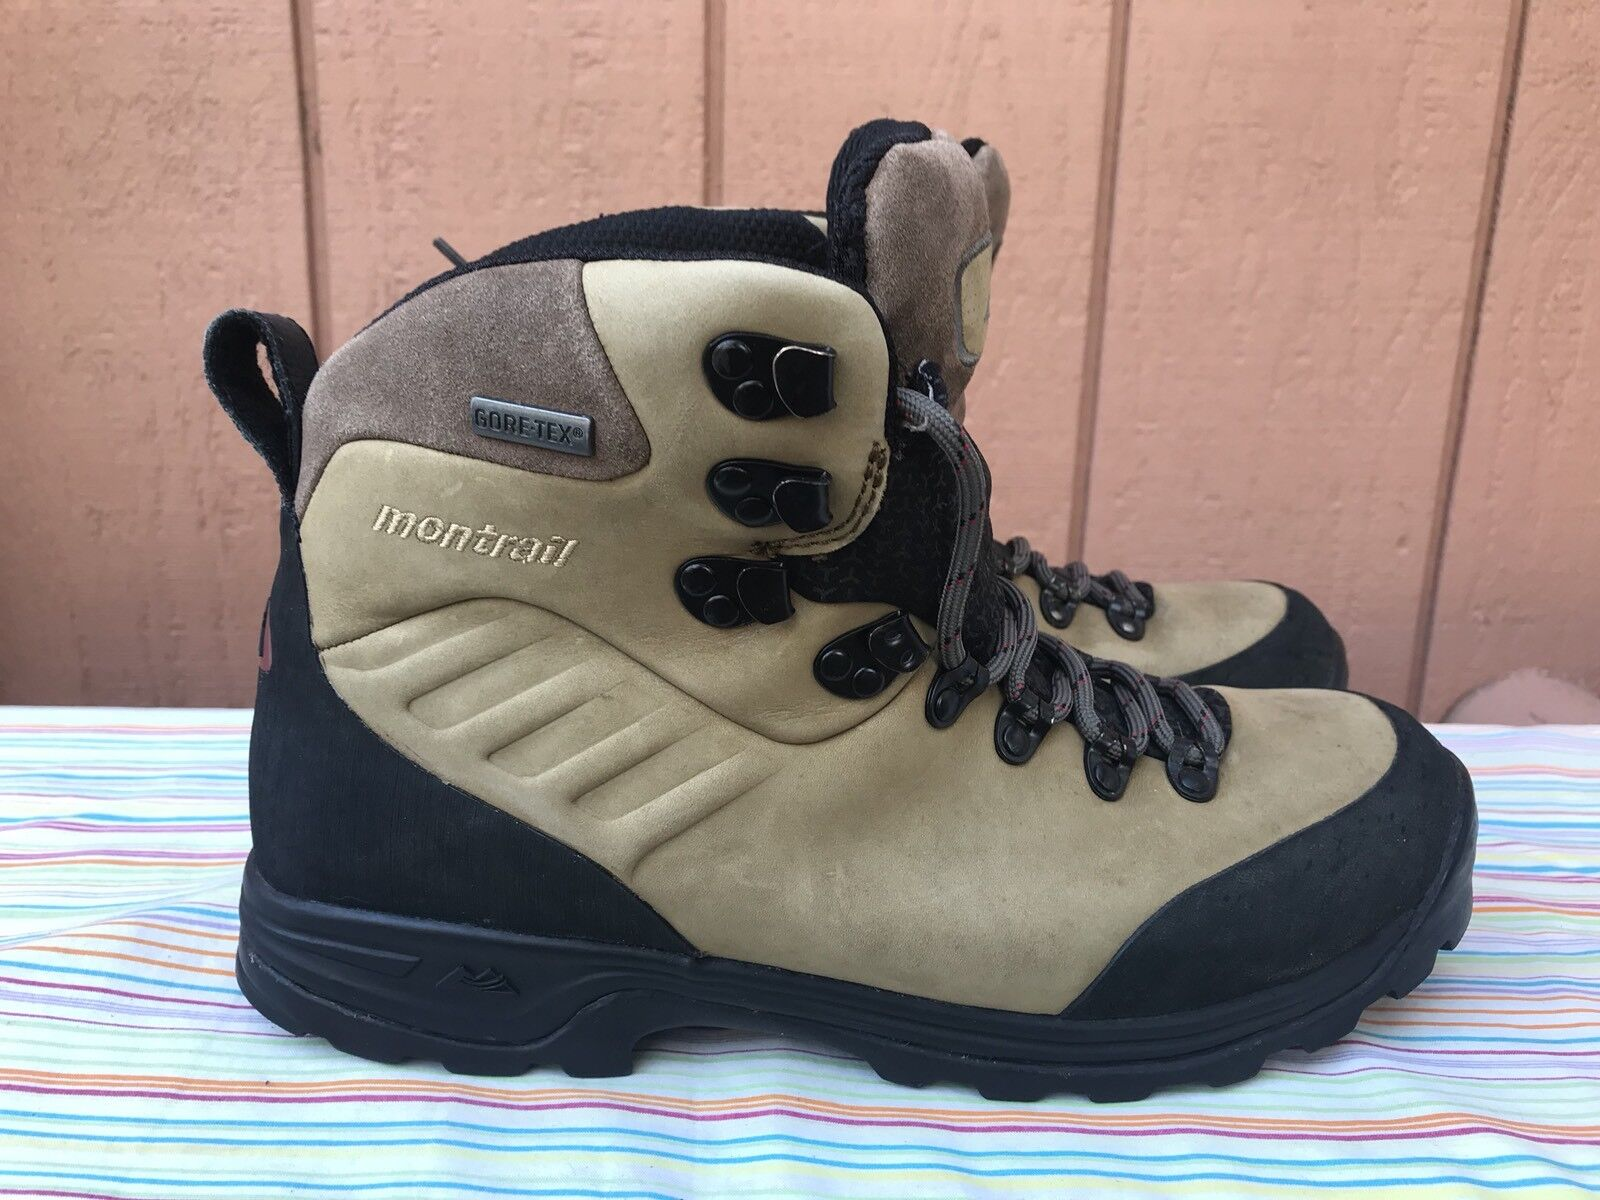 EUC Montrail azul Ridge Gore-Tex Hiking botas mujer US 11 Leather Mountaineering